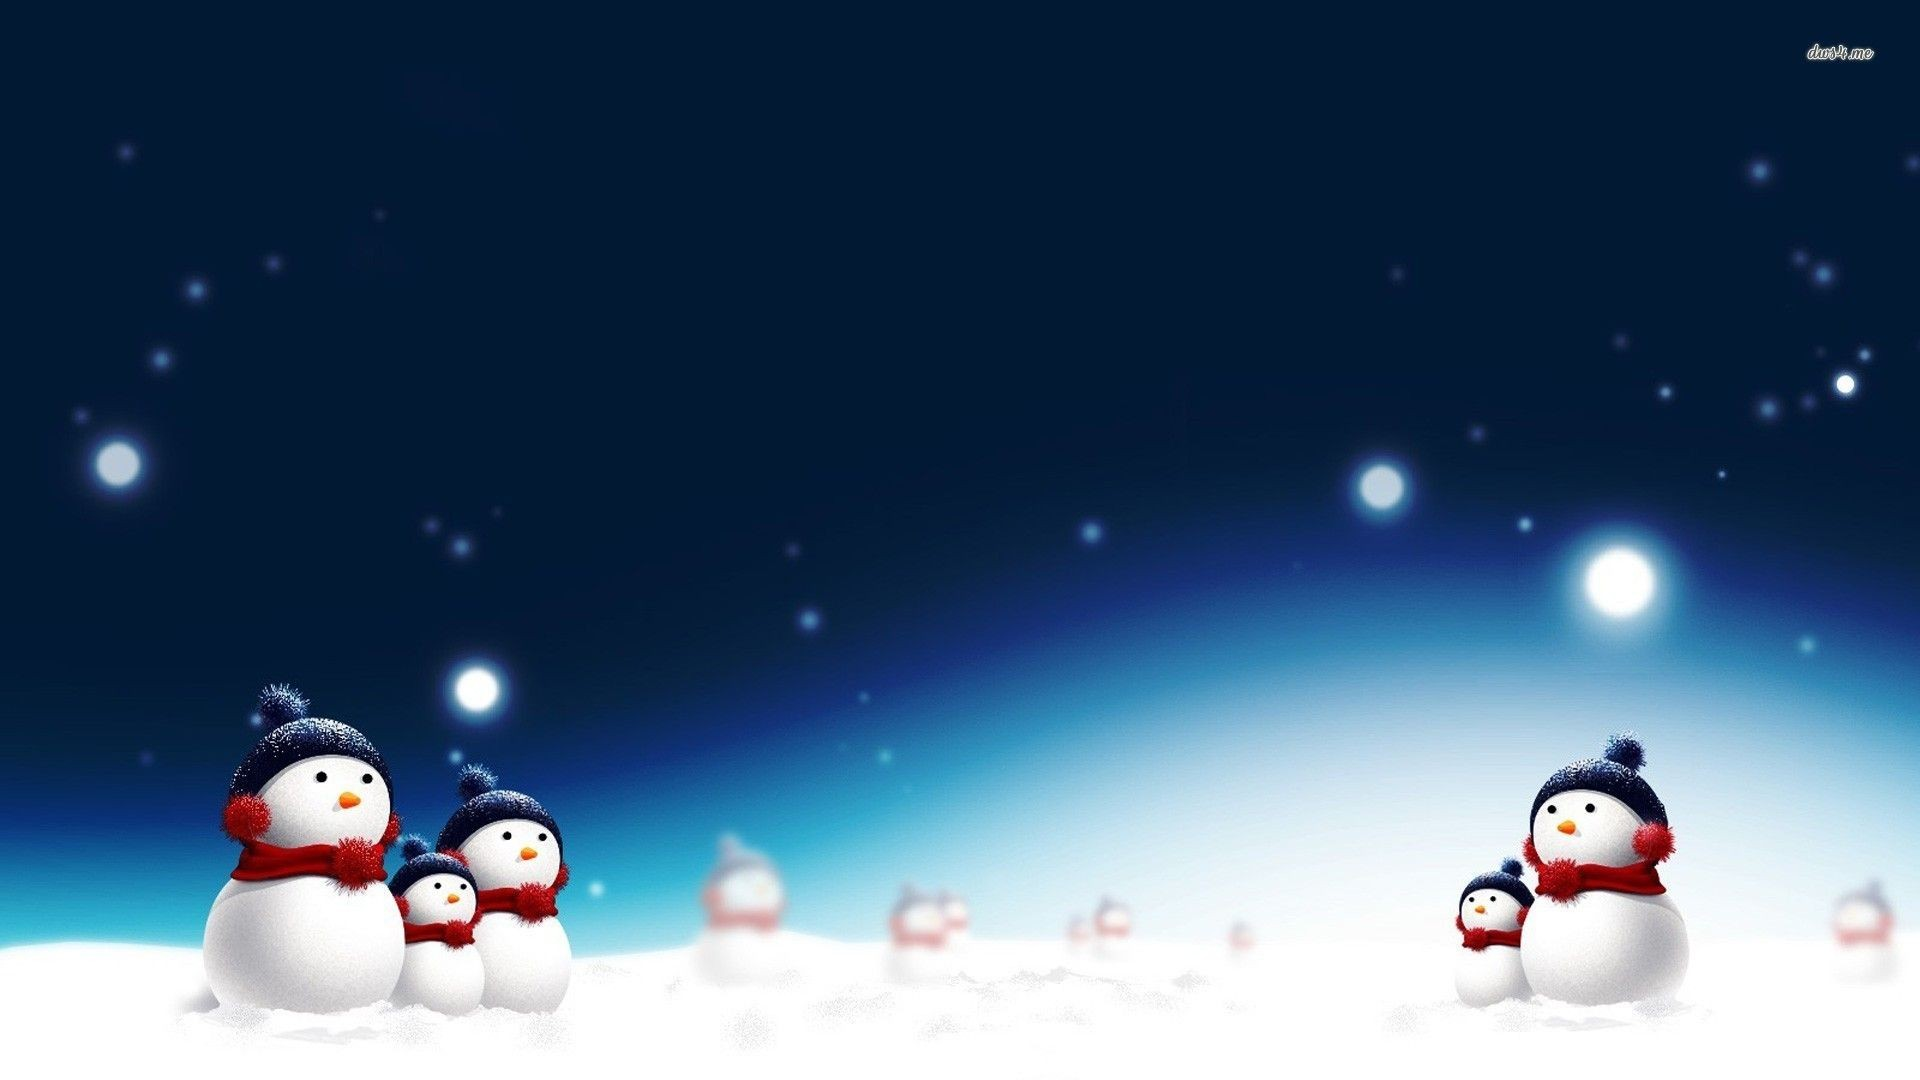 Holiday Wallpaper For Ipad: Holiday Wallpaper ·① Download Free High Resolution